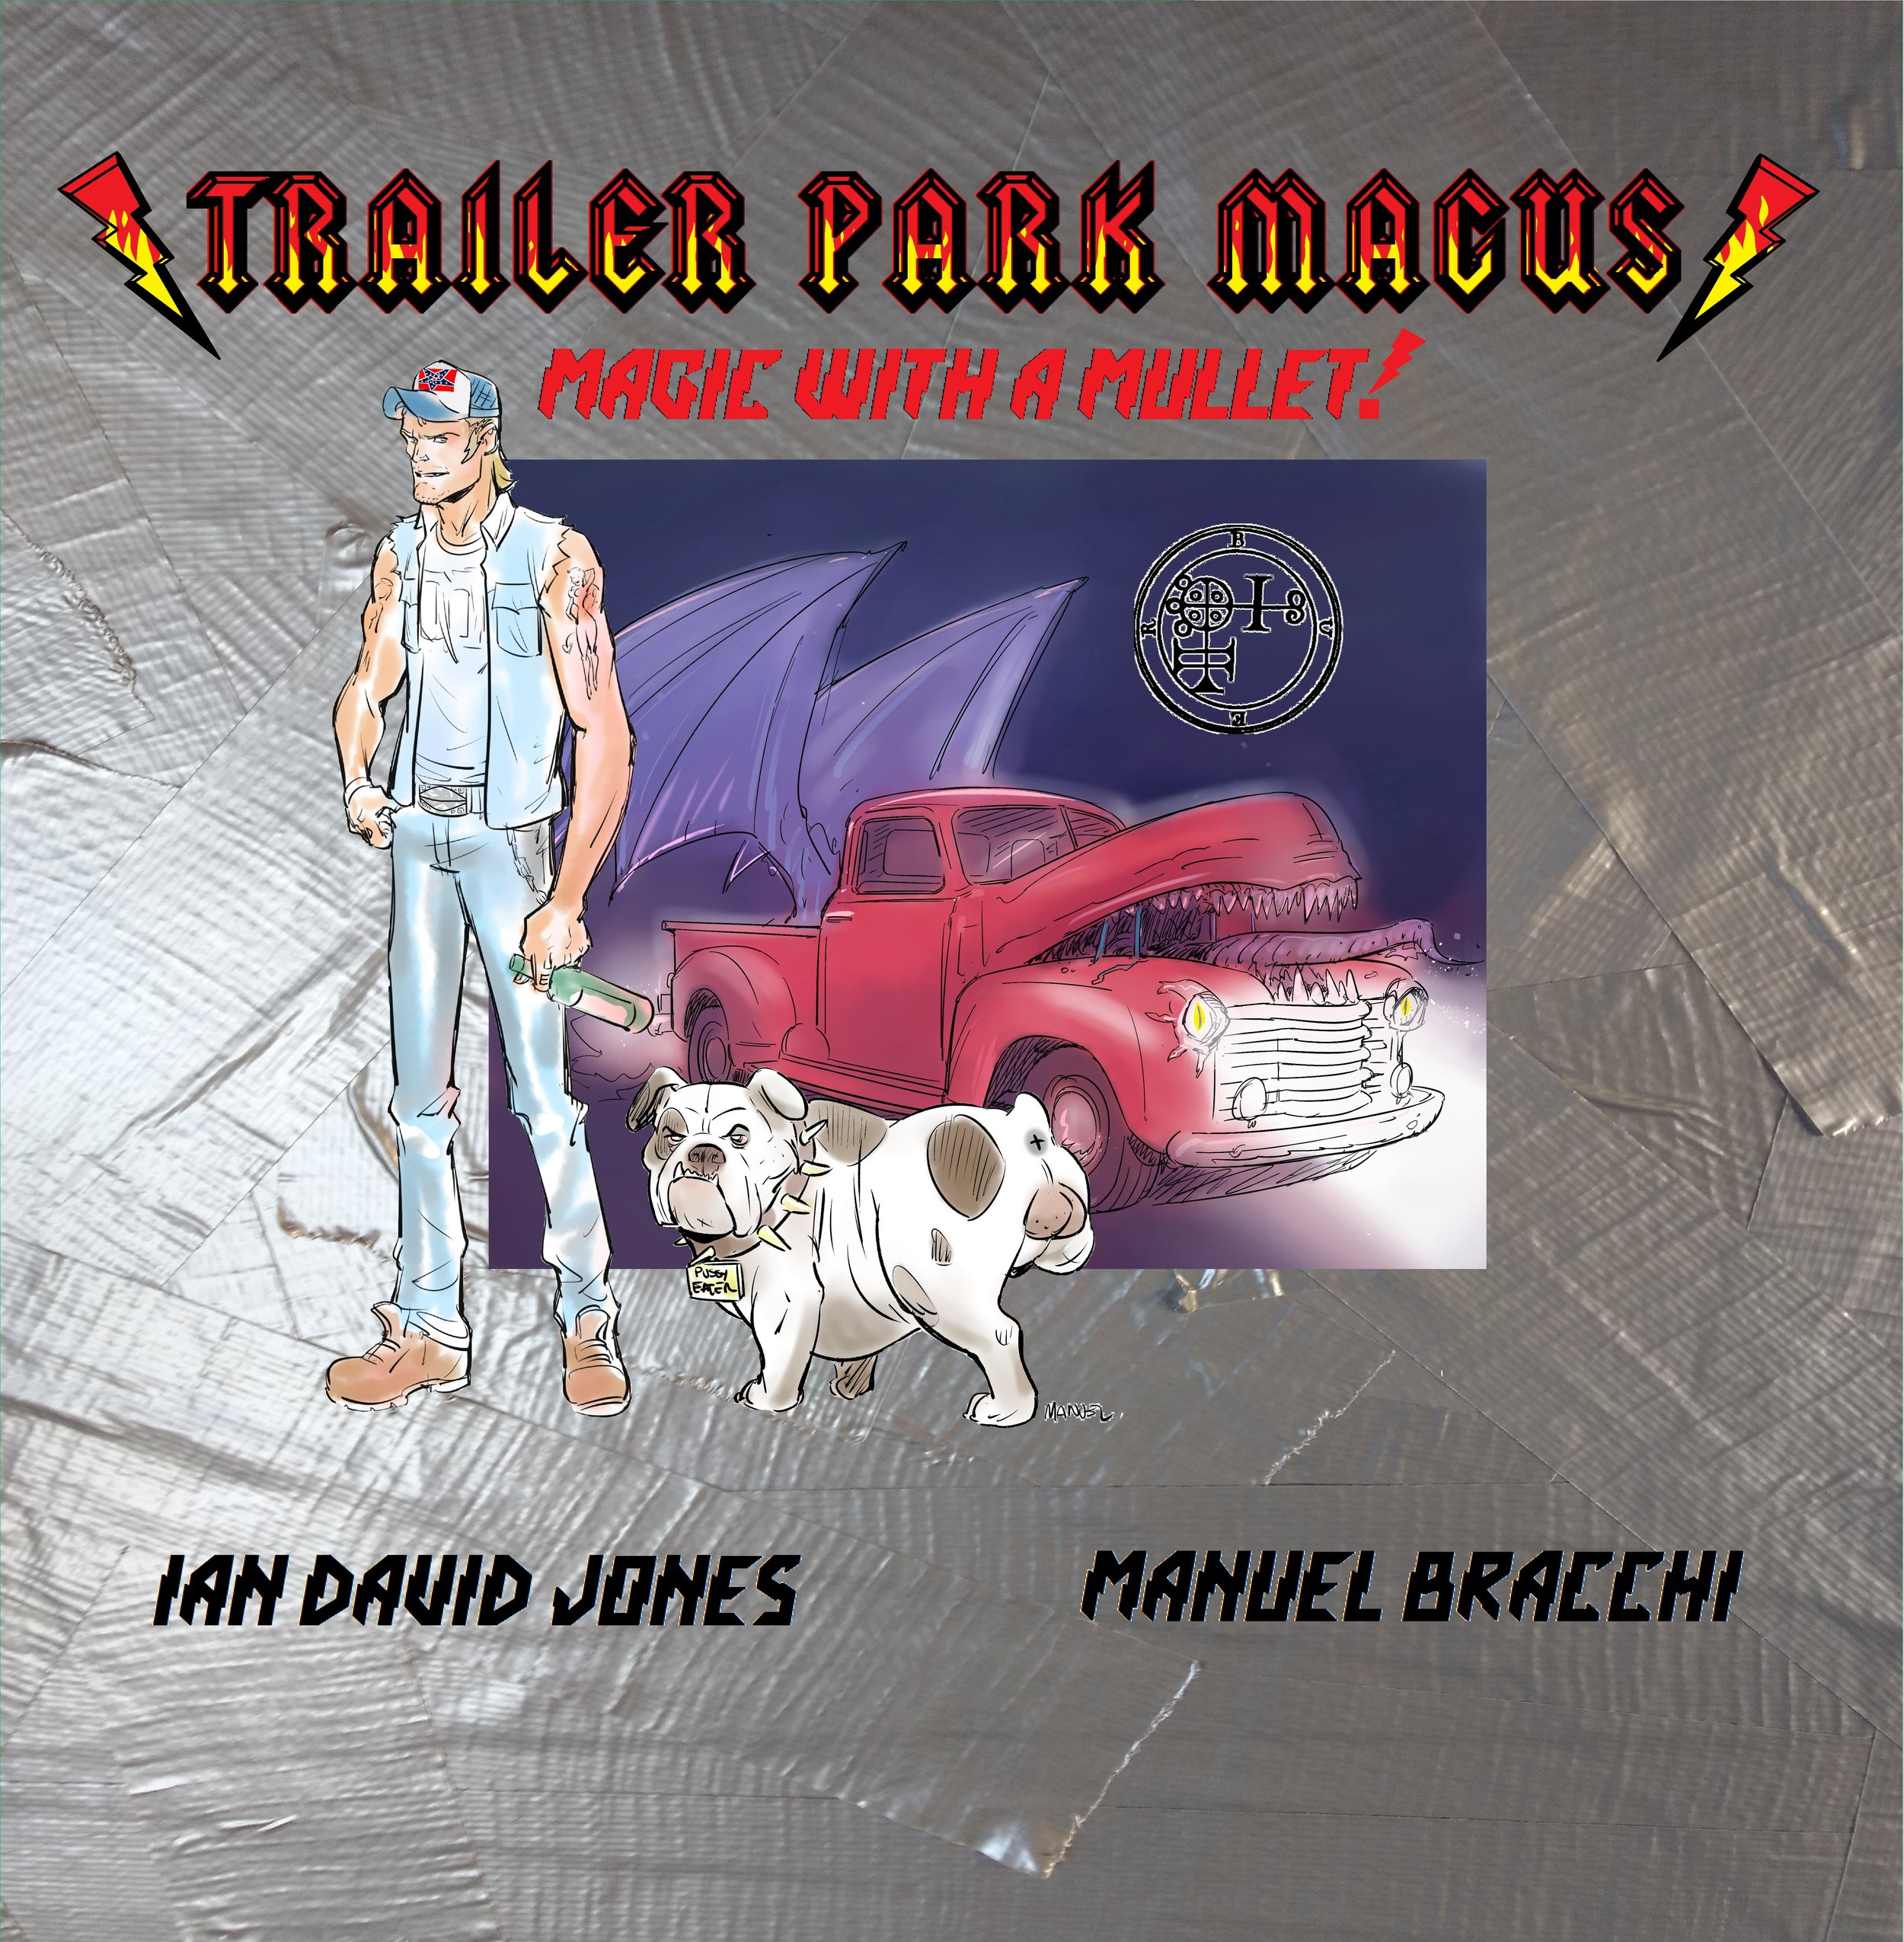 Cover with duct tape CREDITS.jpg